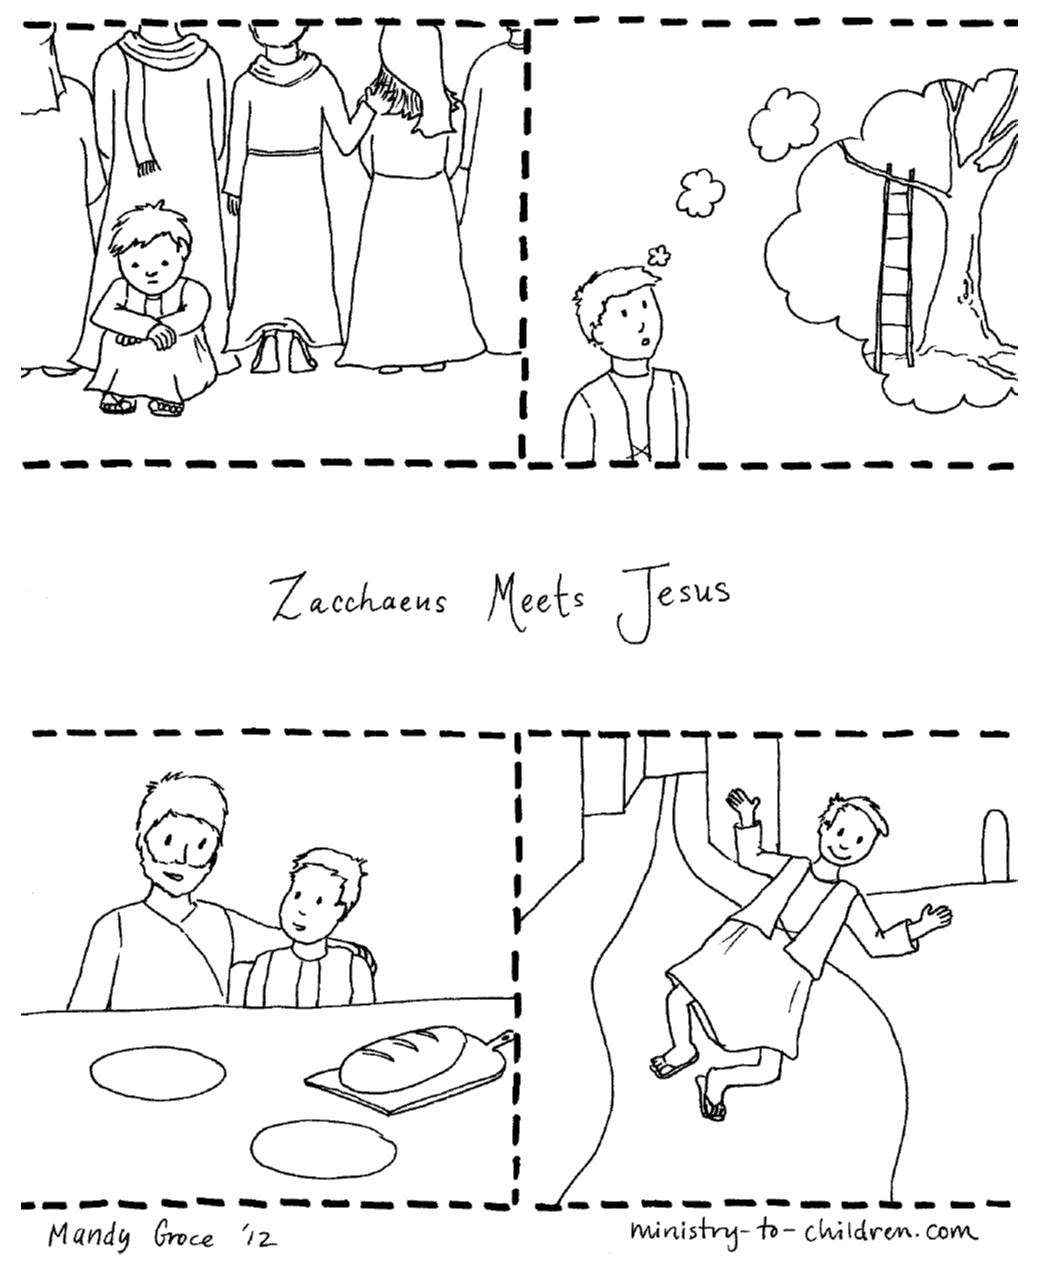 Coloring page zacchaeus - Coloring Pages Zaccheus Jesus And Zacchaeus Coloring Page Pictures